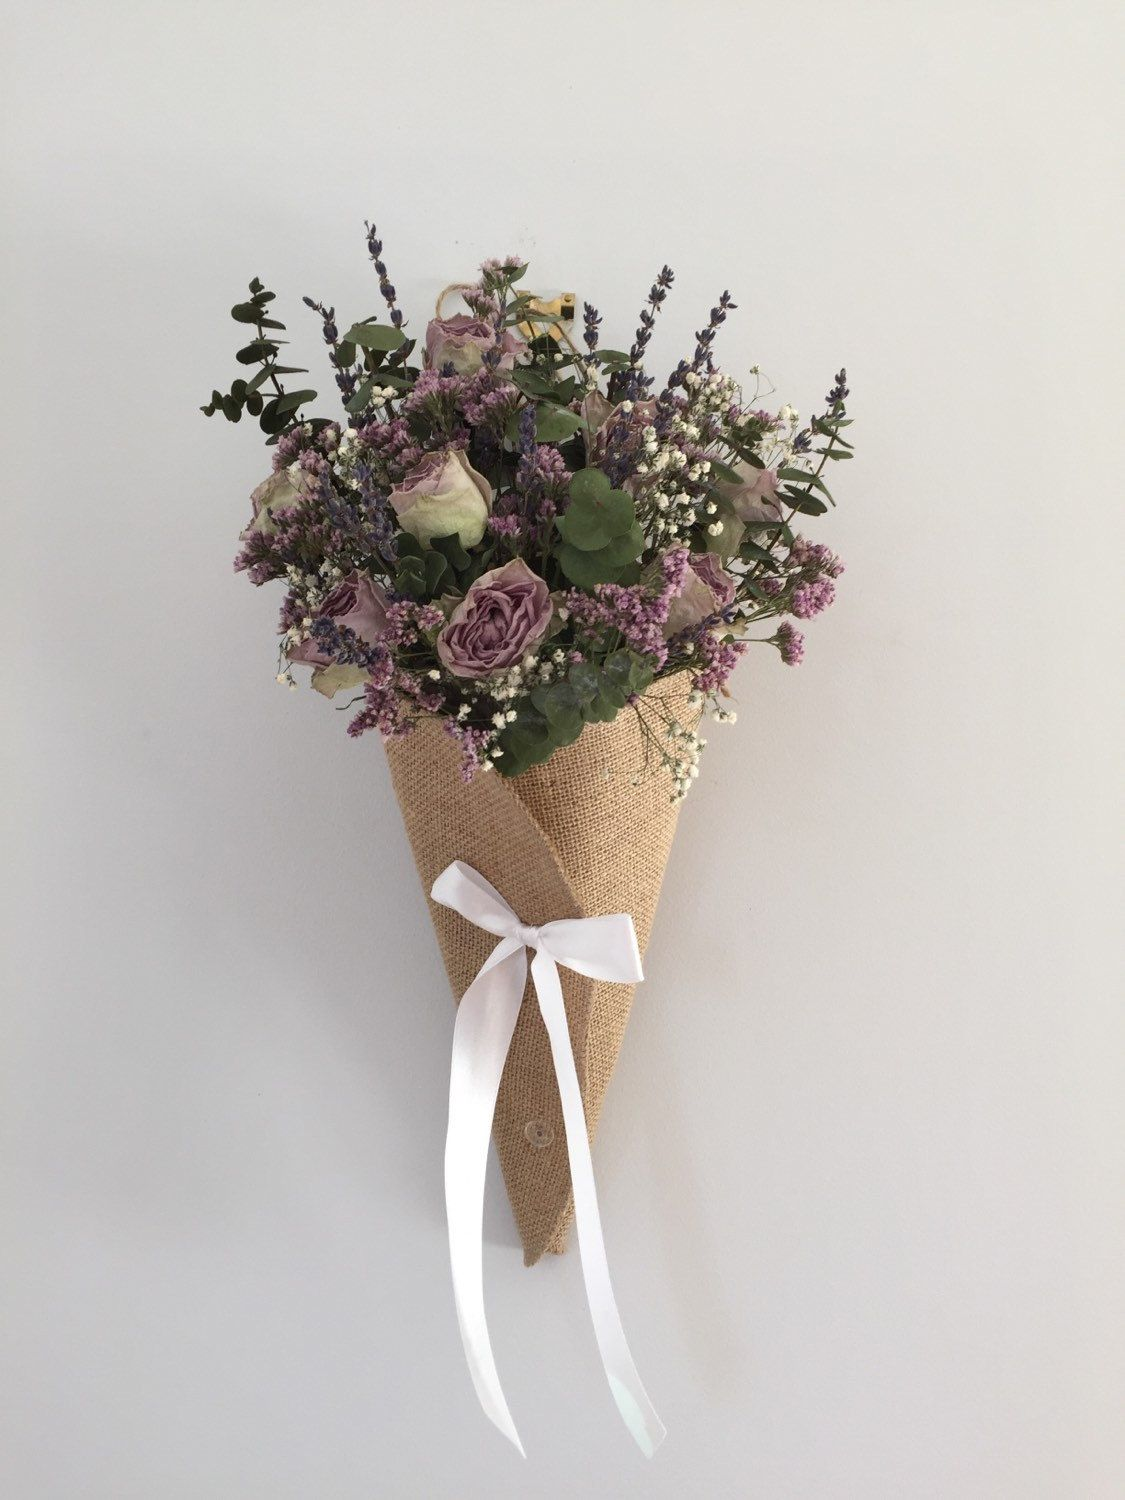 Dried Flower Arrangement Cone With Eucalyptus Roses Lavender And